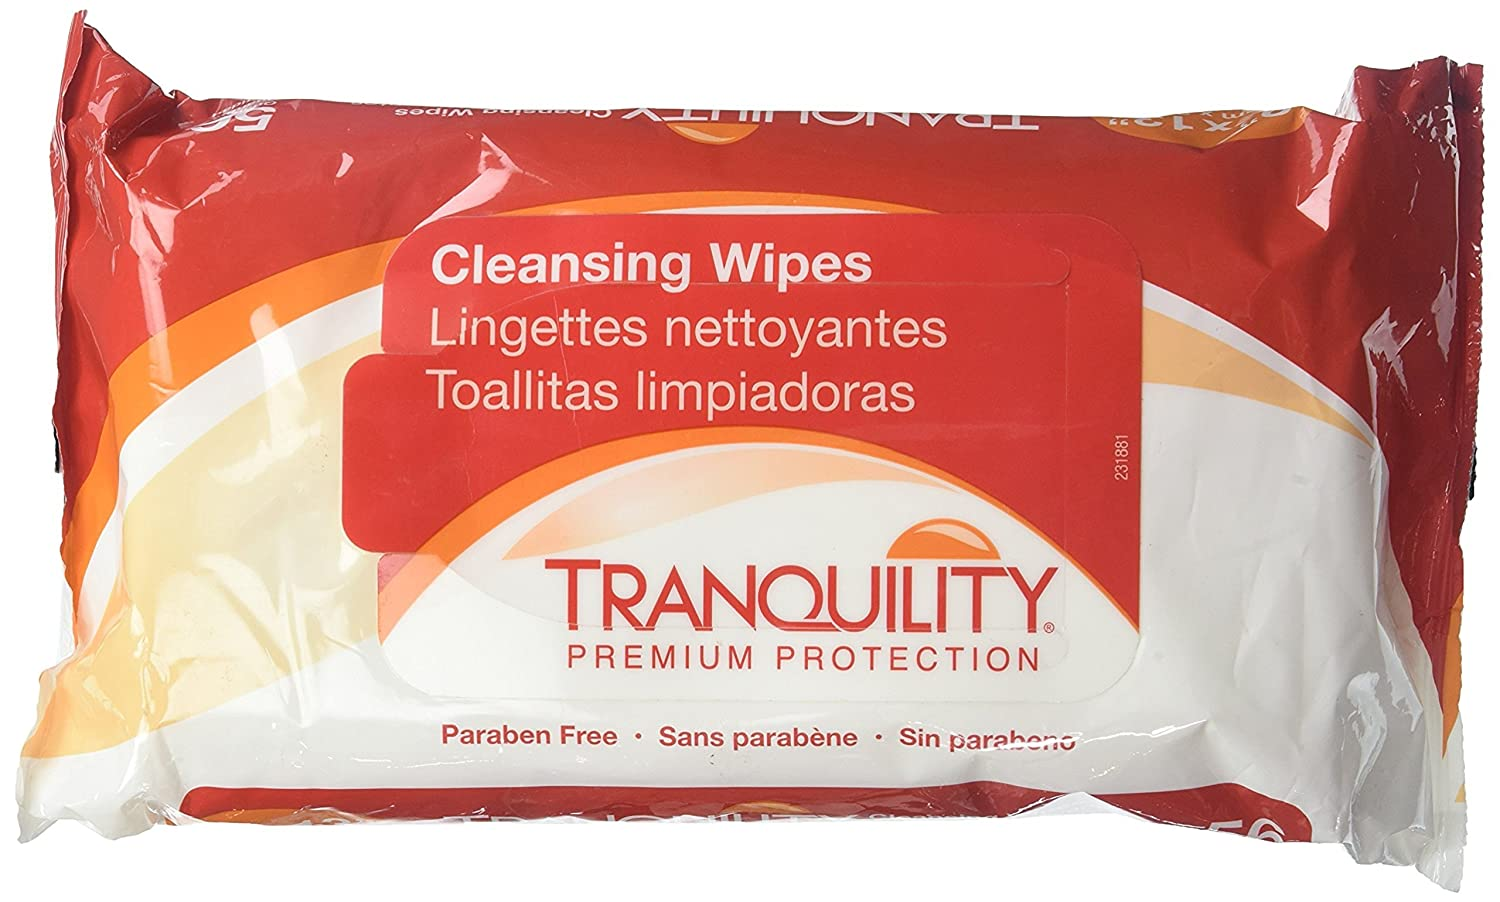 Amazon.com: Tranquility Cleansing Wipes - 9